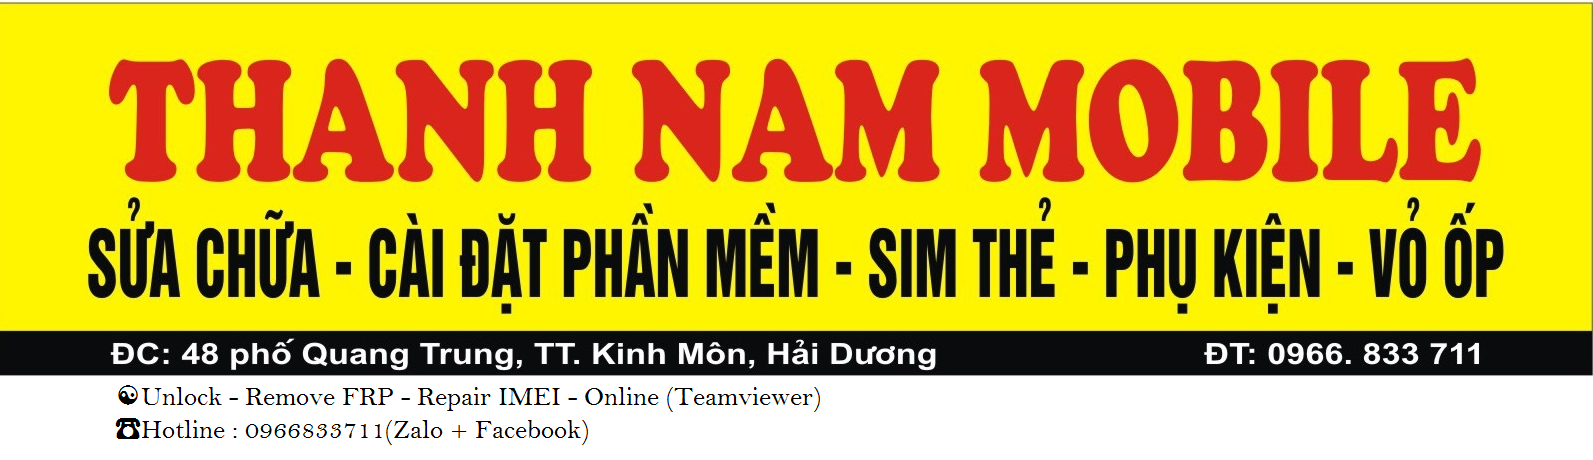 Thanh Nam Mobile